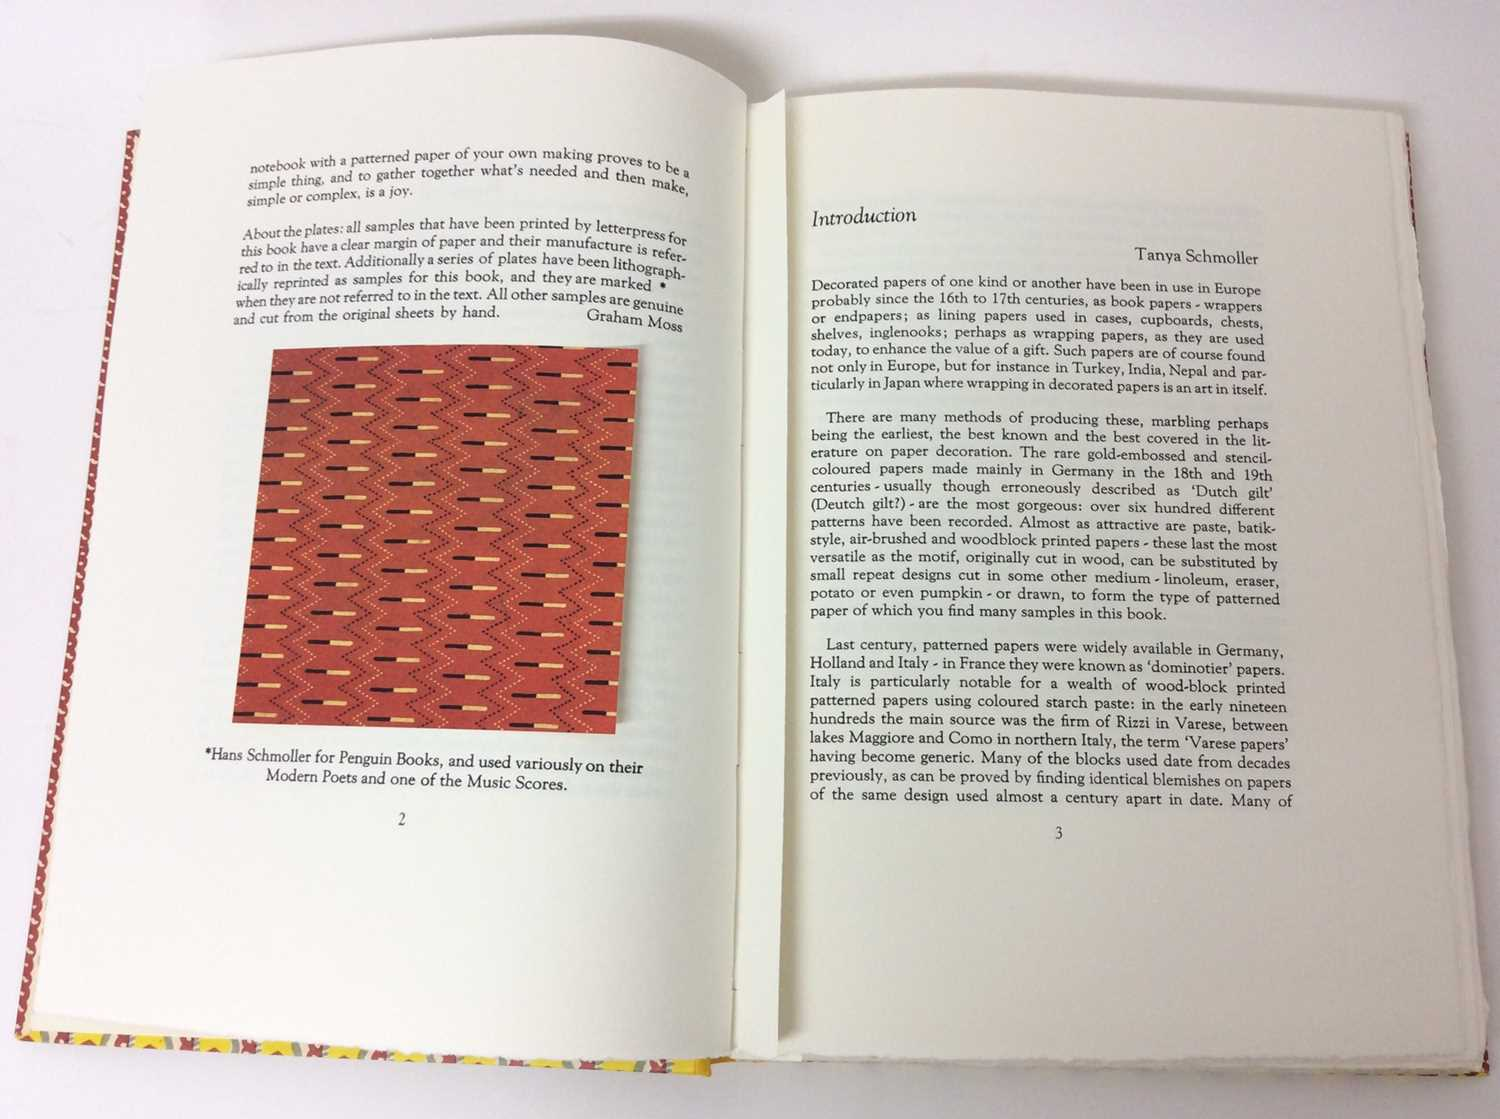 In Praise of Patterned Papers, Incline Press, 200/300 - Image 5 of 12